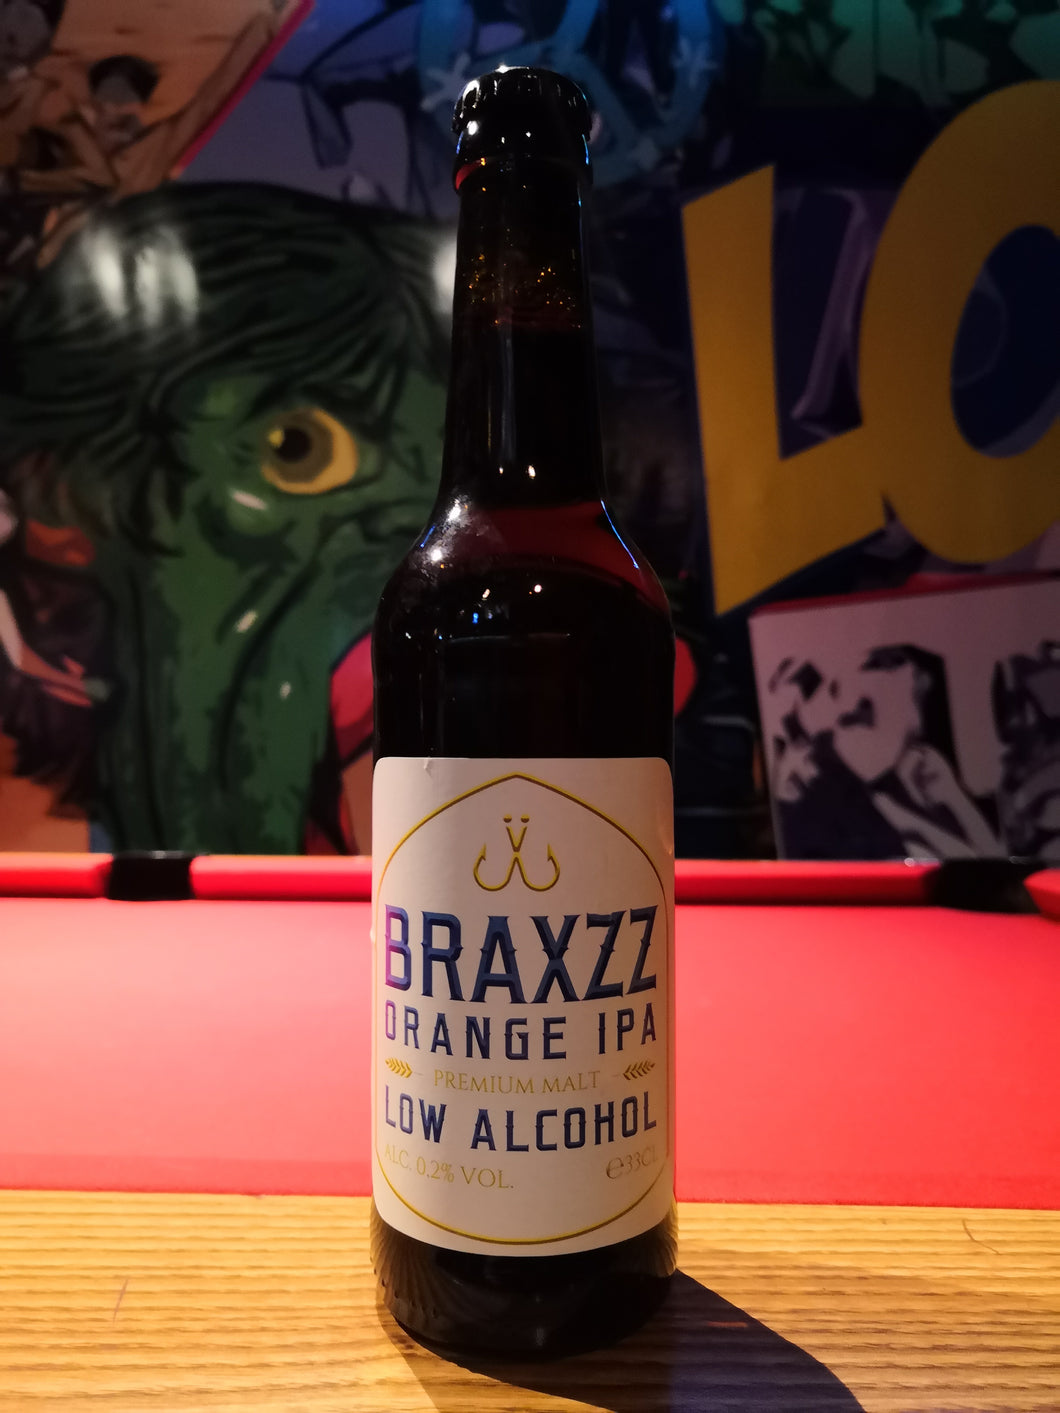 Braxzz Orange IPA Low Alcohol